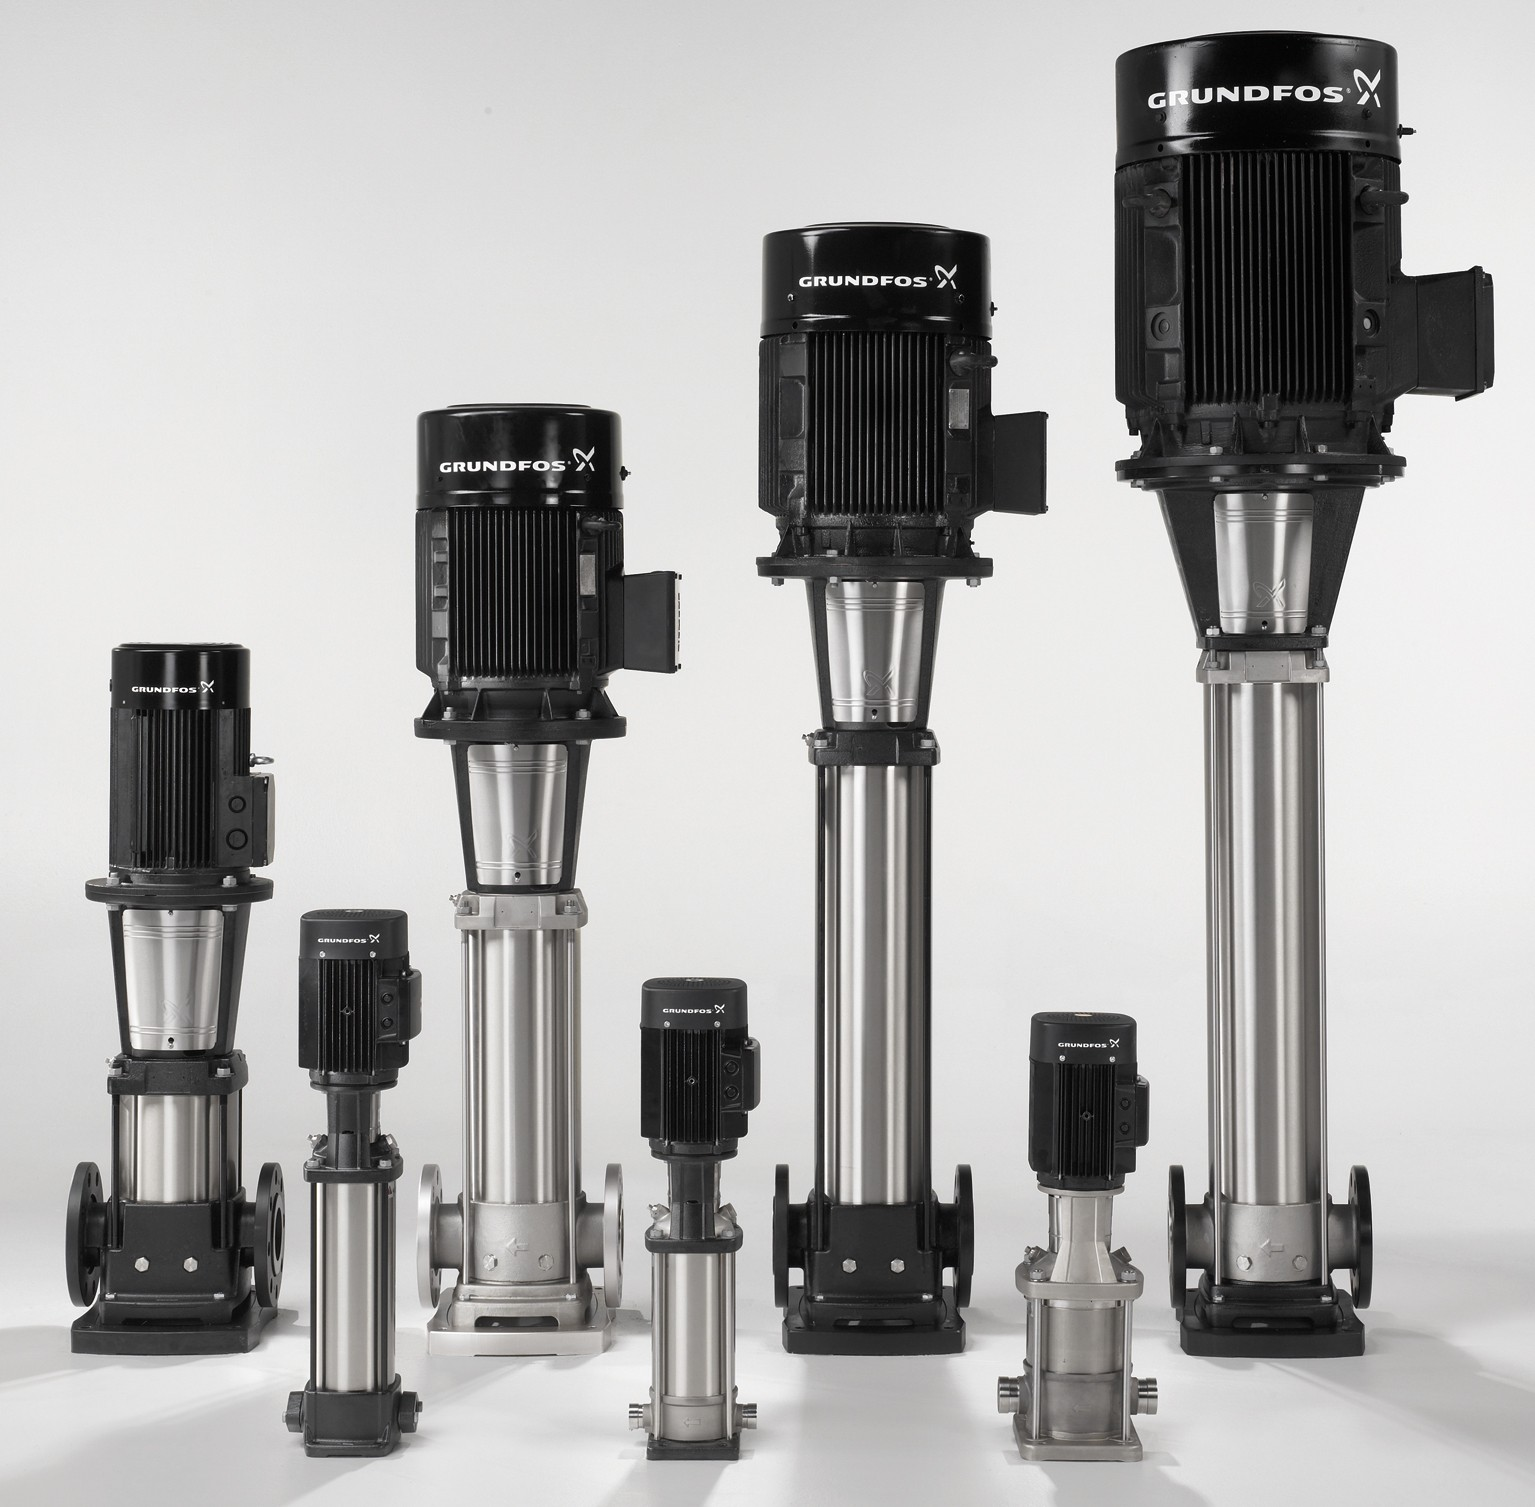 A Complete Water grundfos pumps Buying Guide